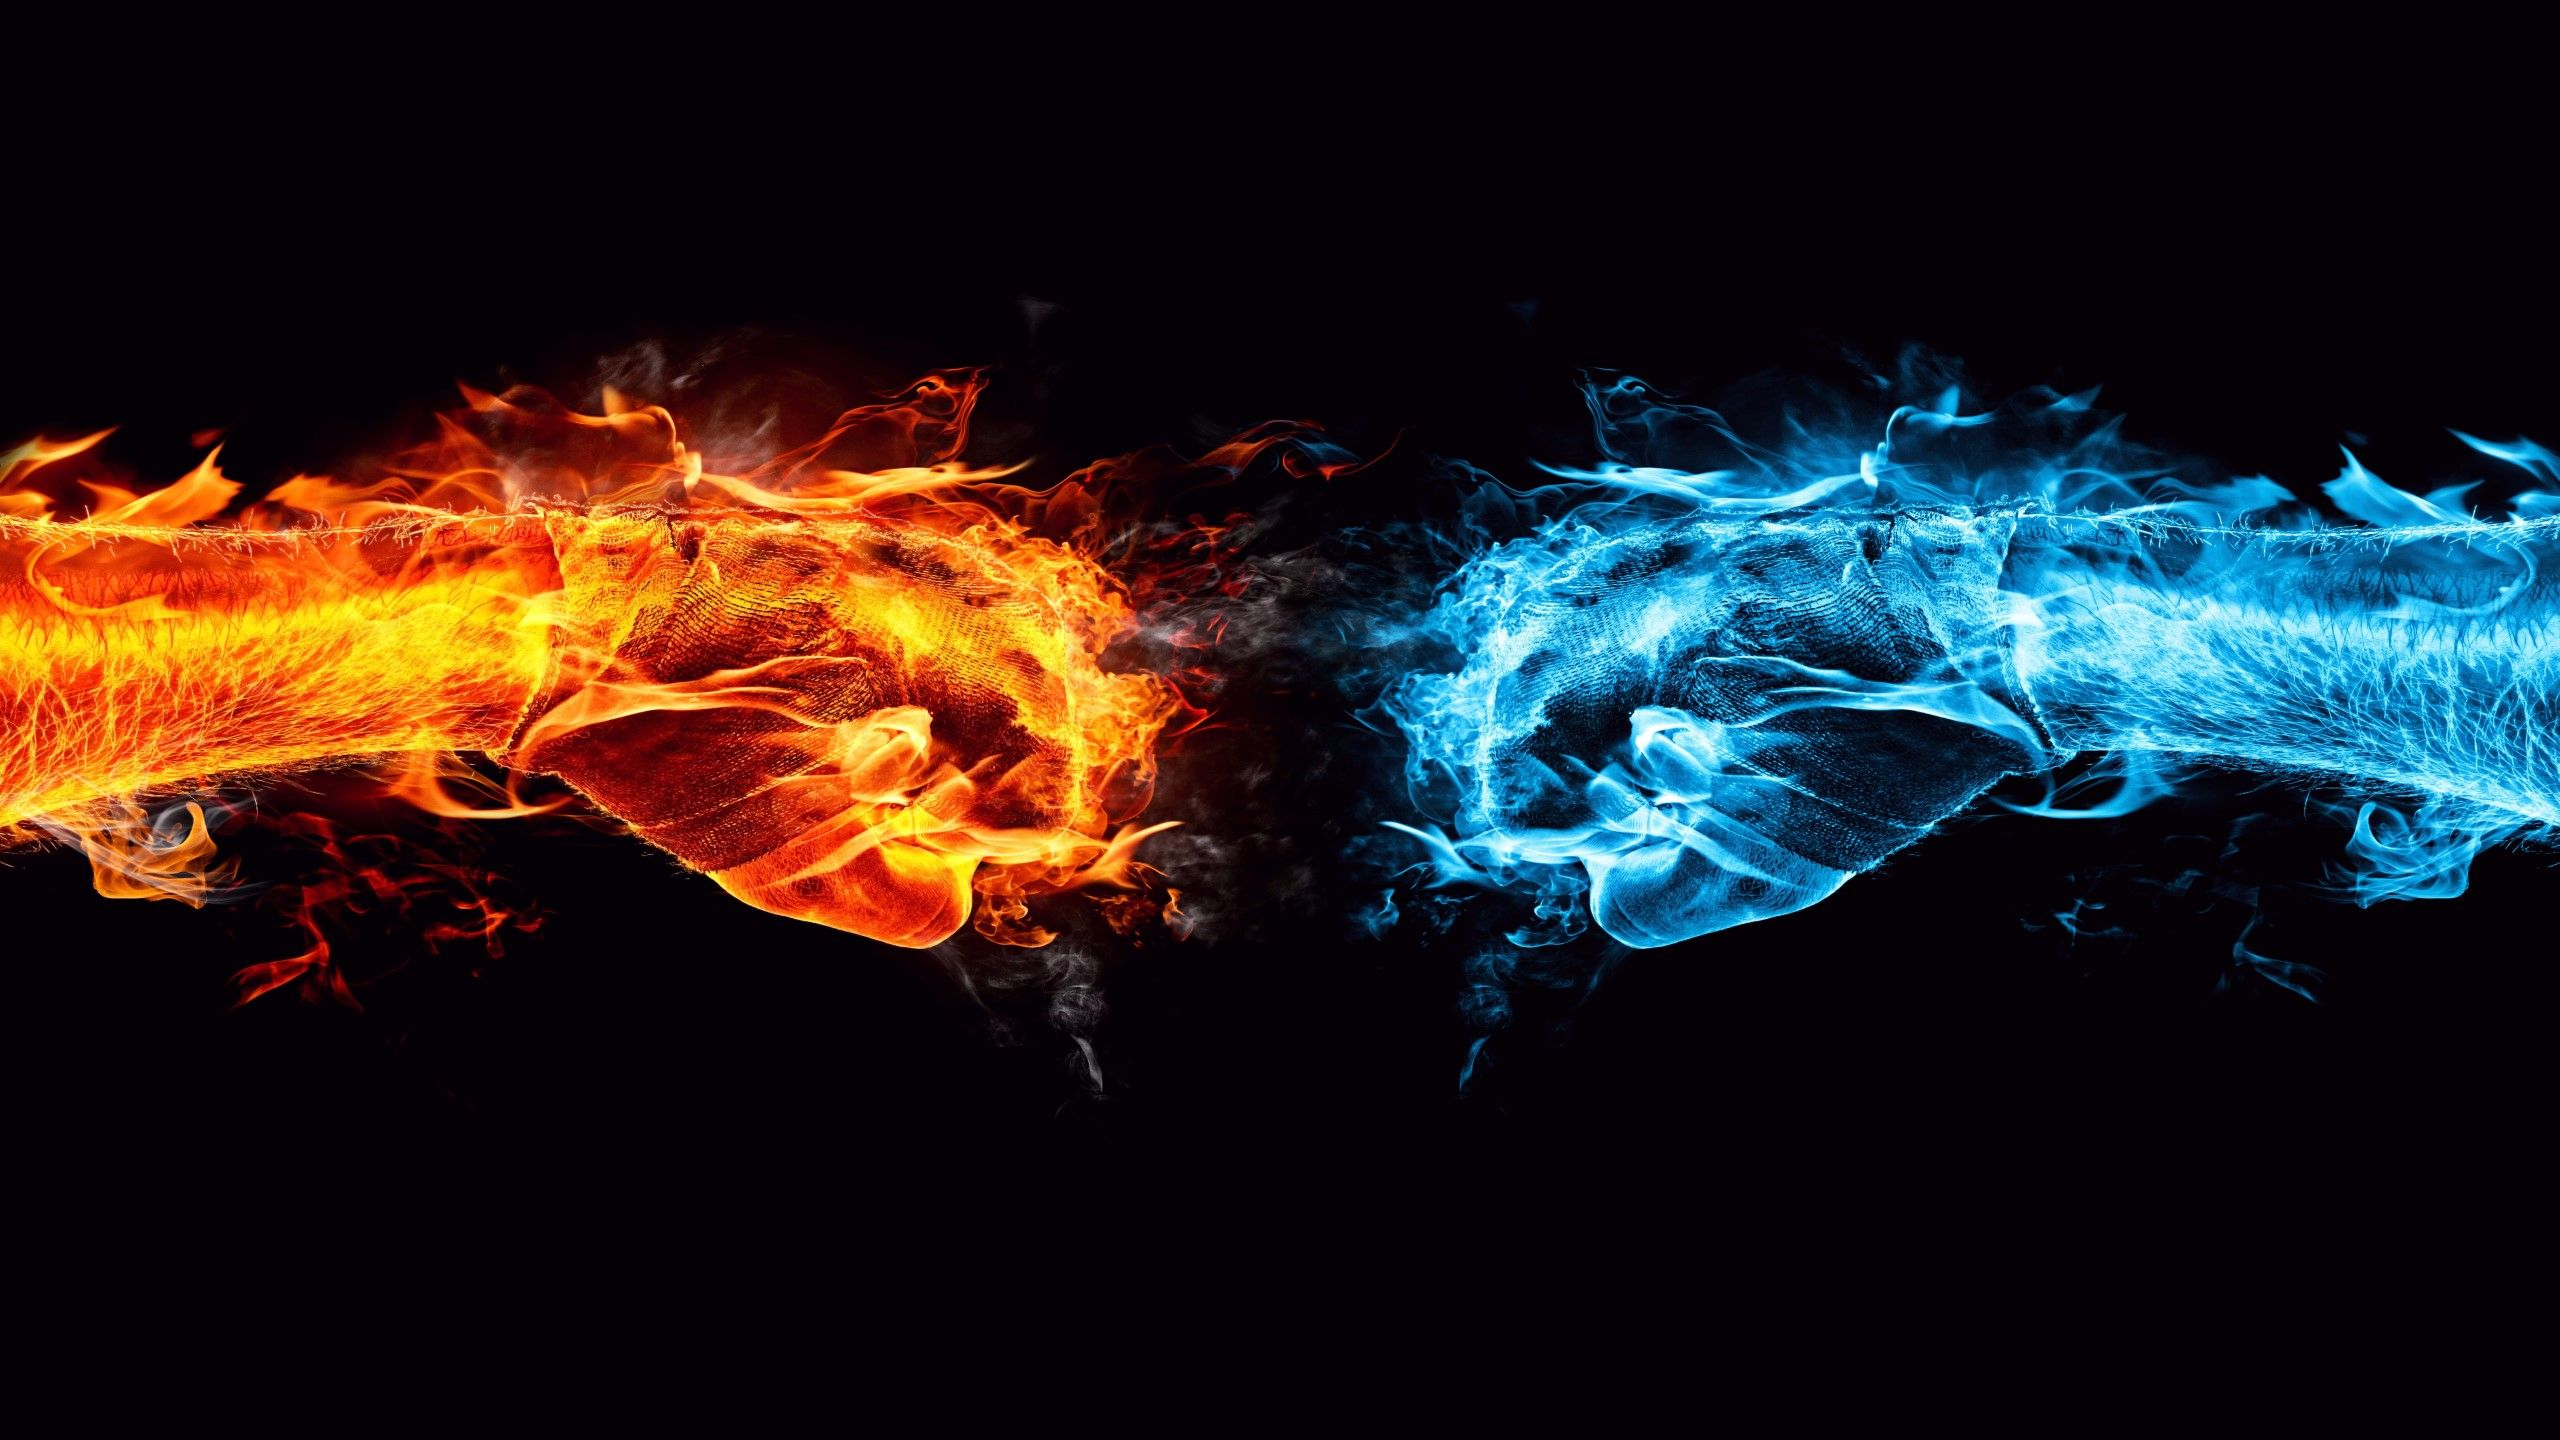 Fire And Ice Wallpapers Top Free Fire And Ice Backgrounds